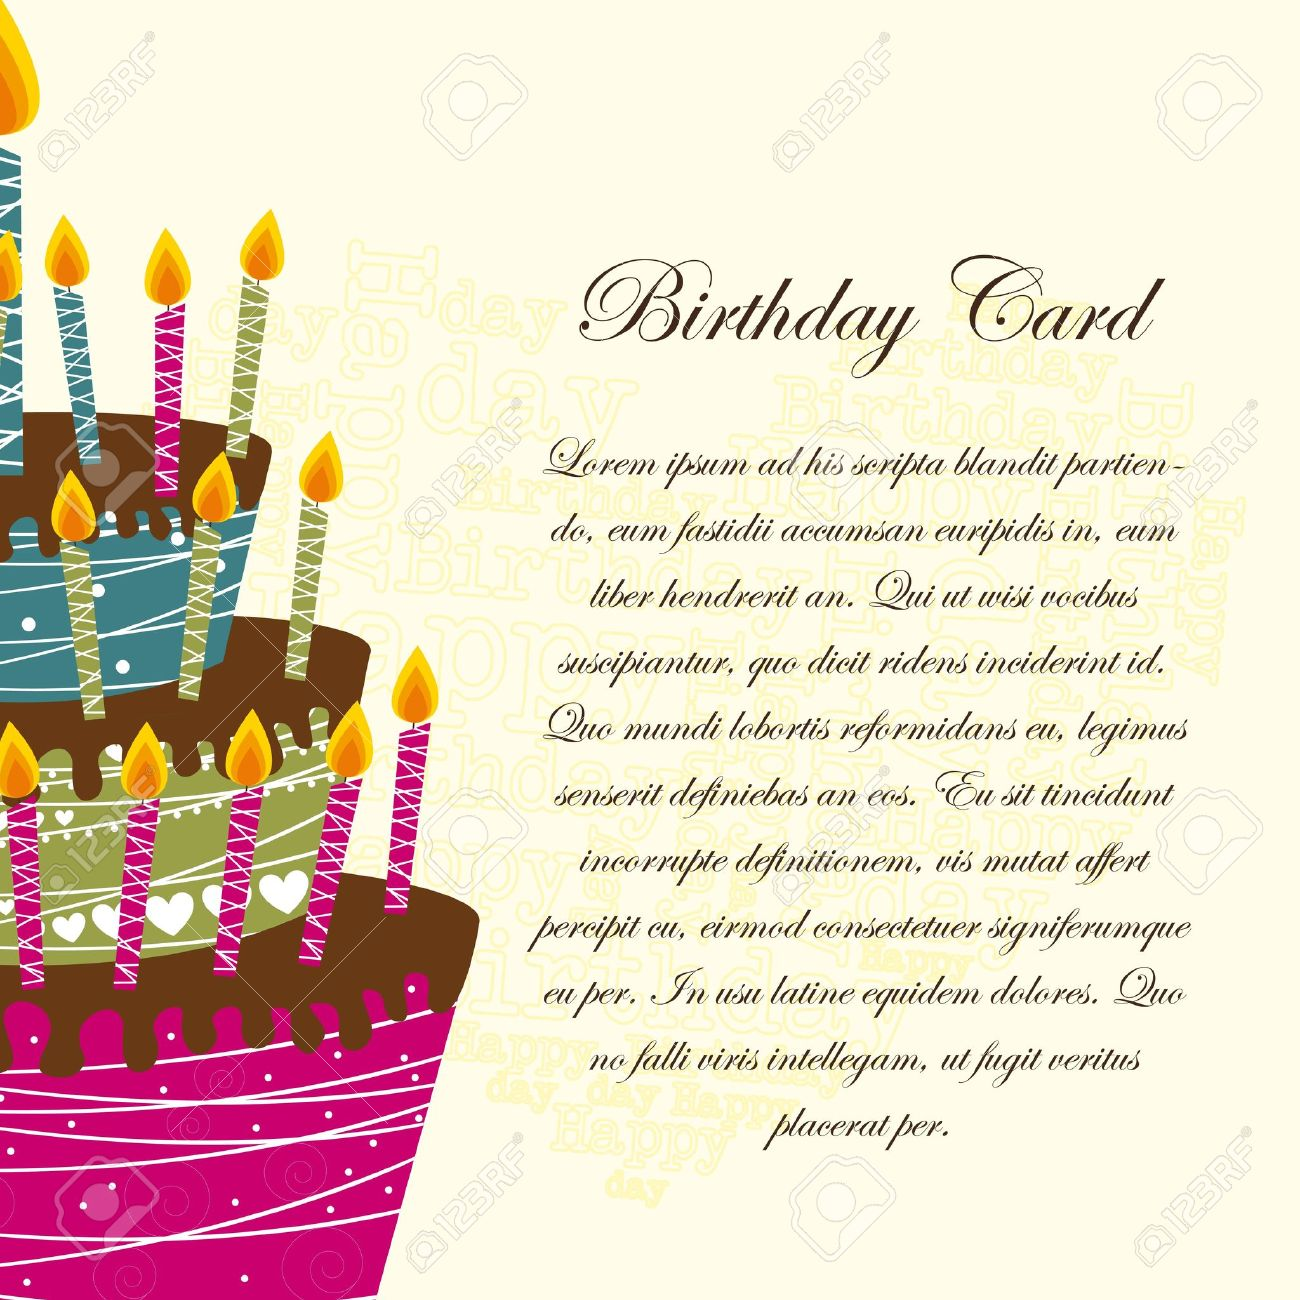 Birthday card with cake over beige background royalty free cliparts birthday card with cake over beige background stock vector 12459227 stopboris Gallery